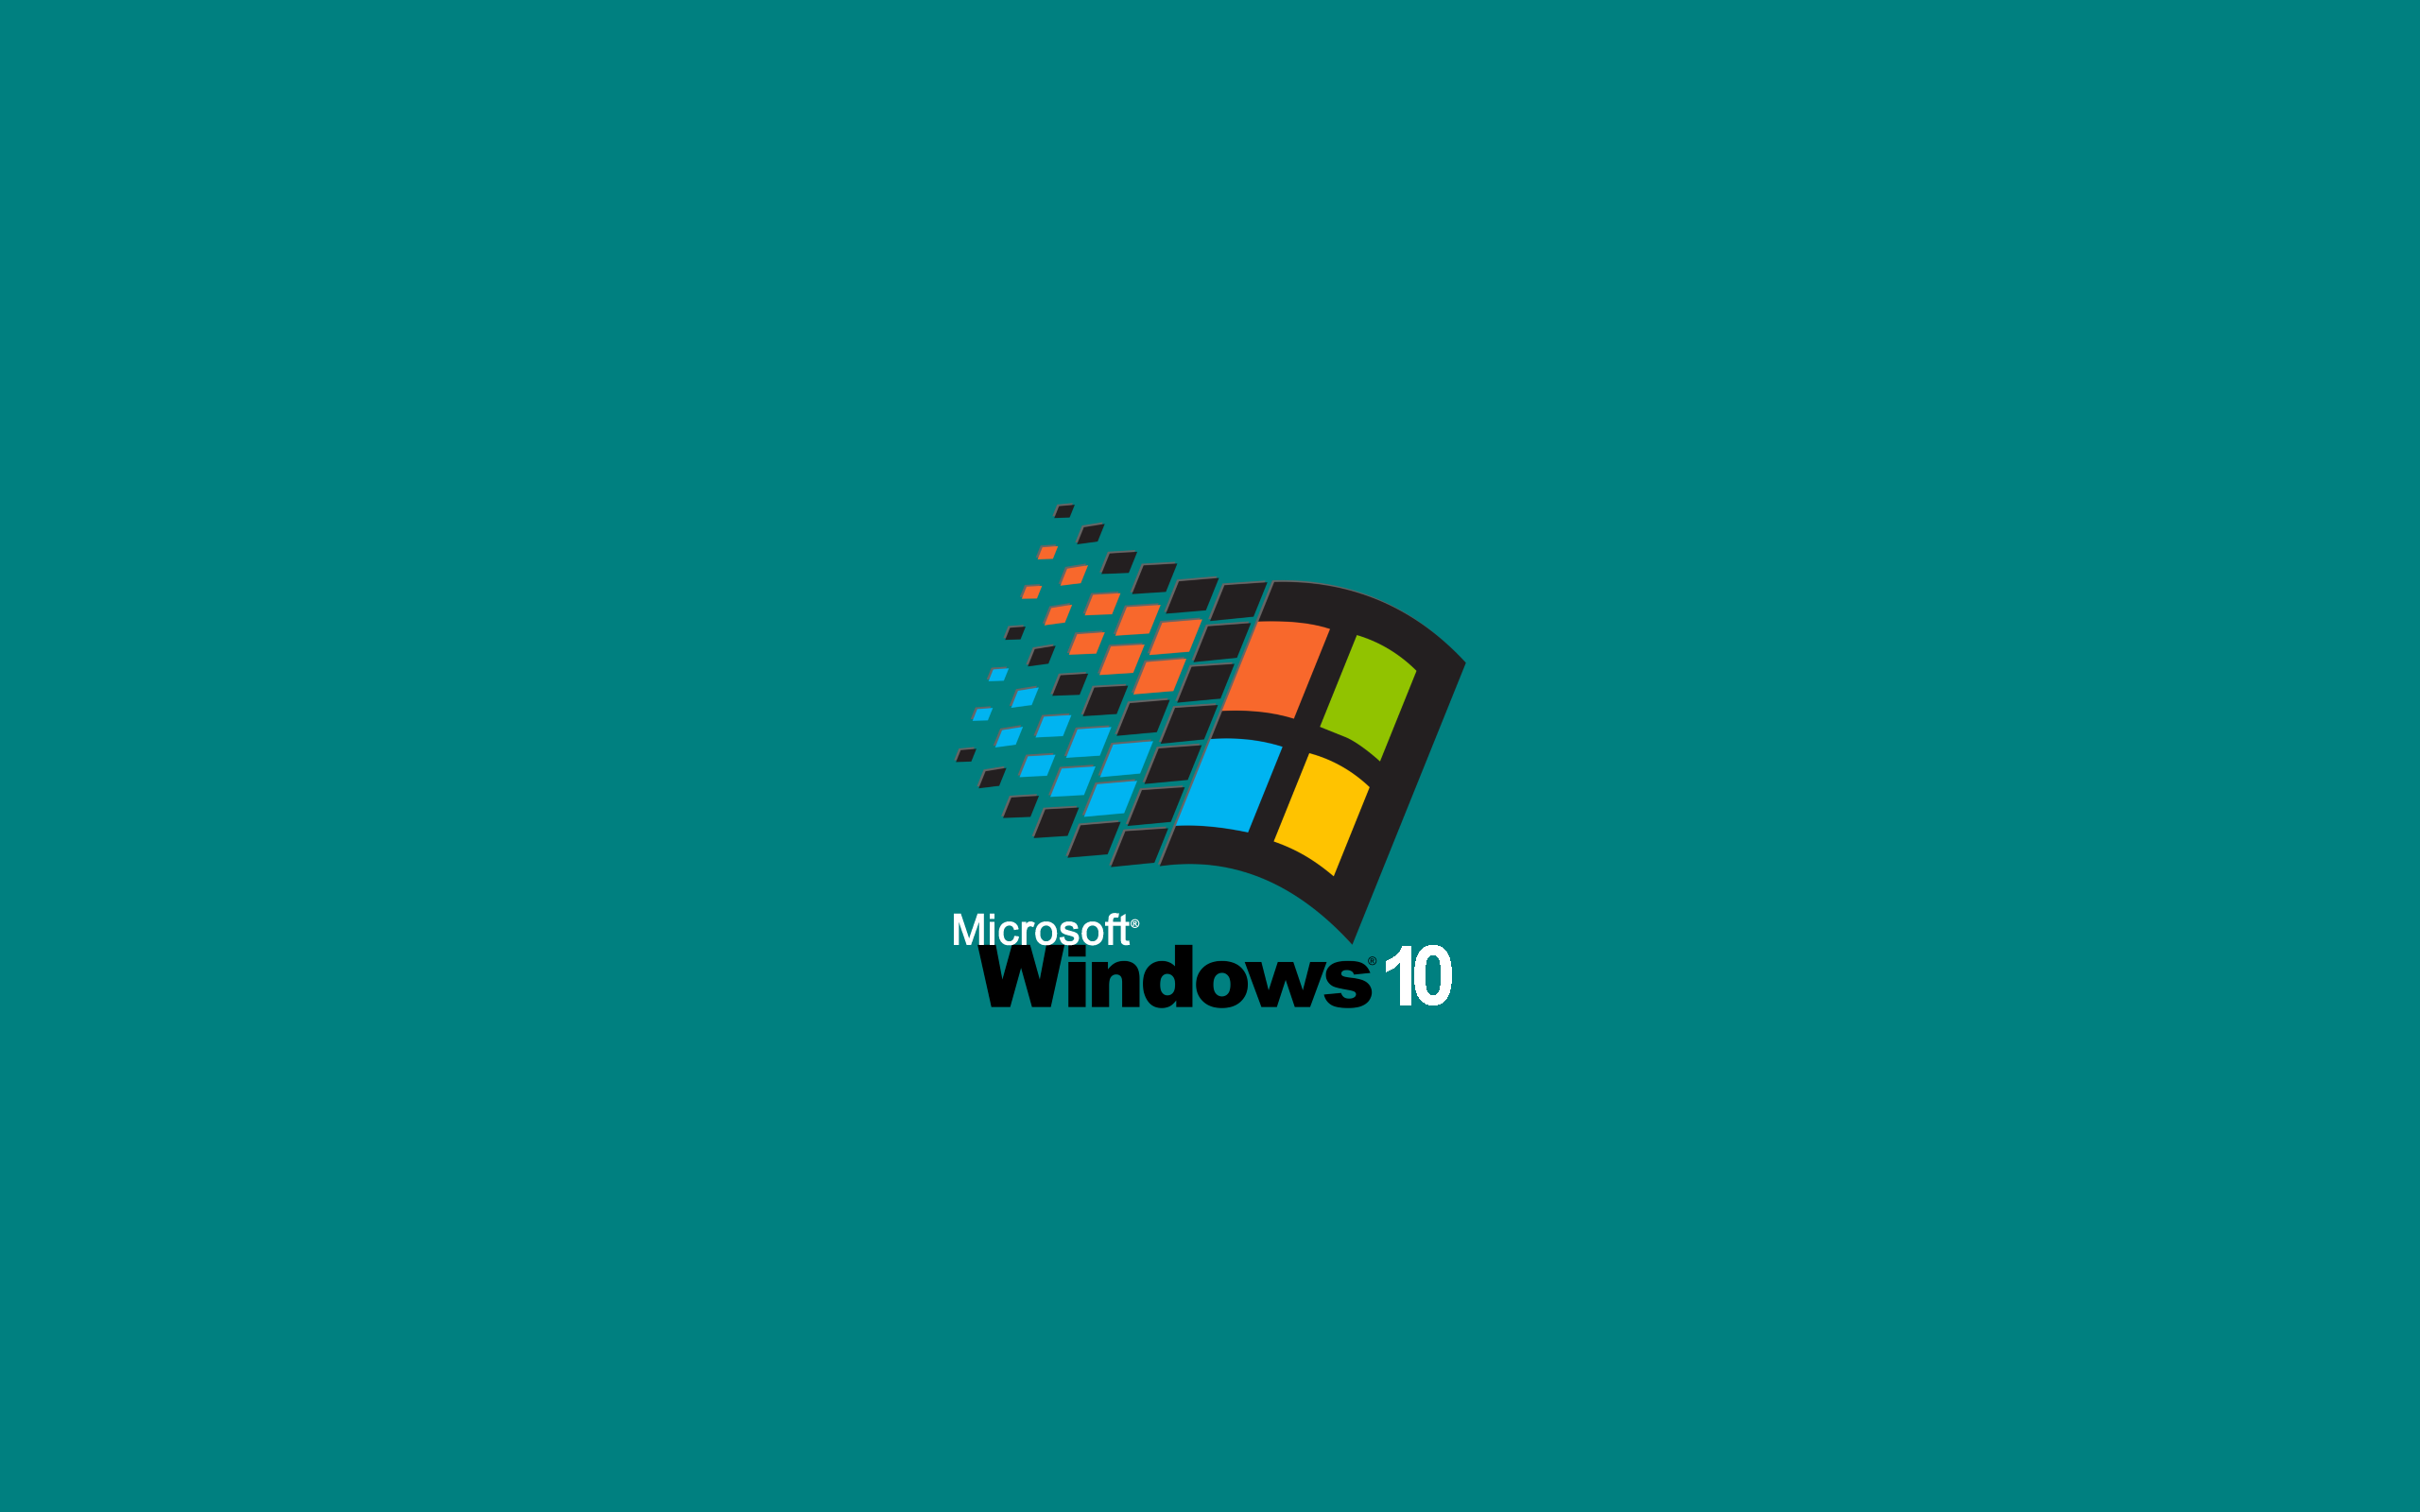 Windows 95 Style Windows 10 Wallpaper R Wallpapers Windows 95 Wallpaper Windows 10 Windows Wallpaper